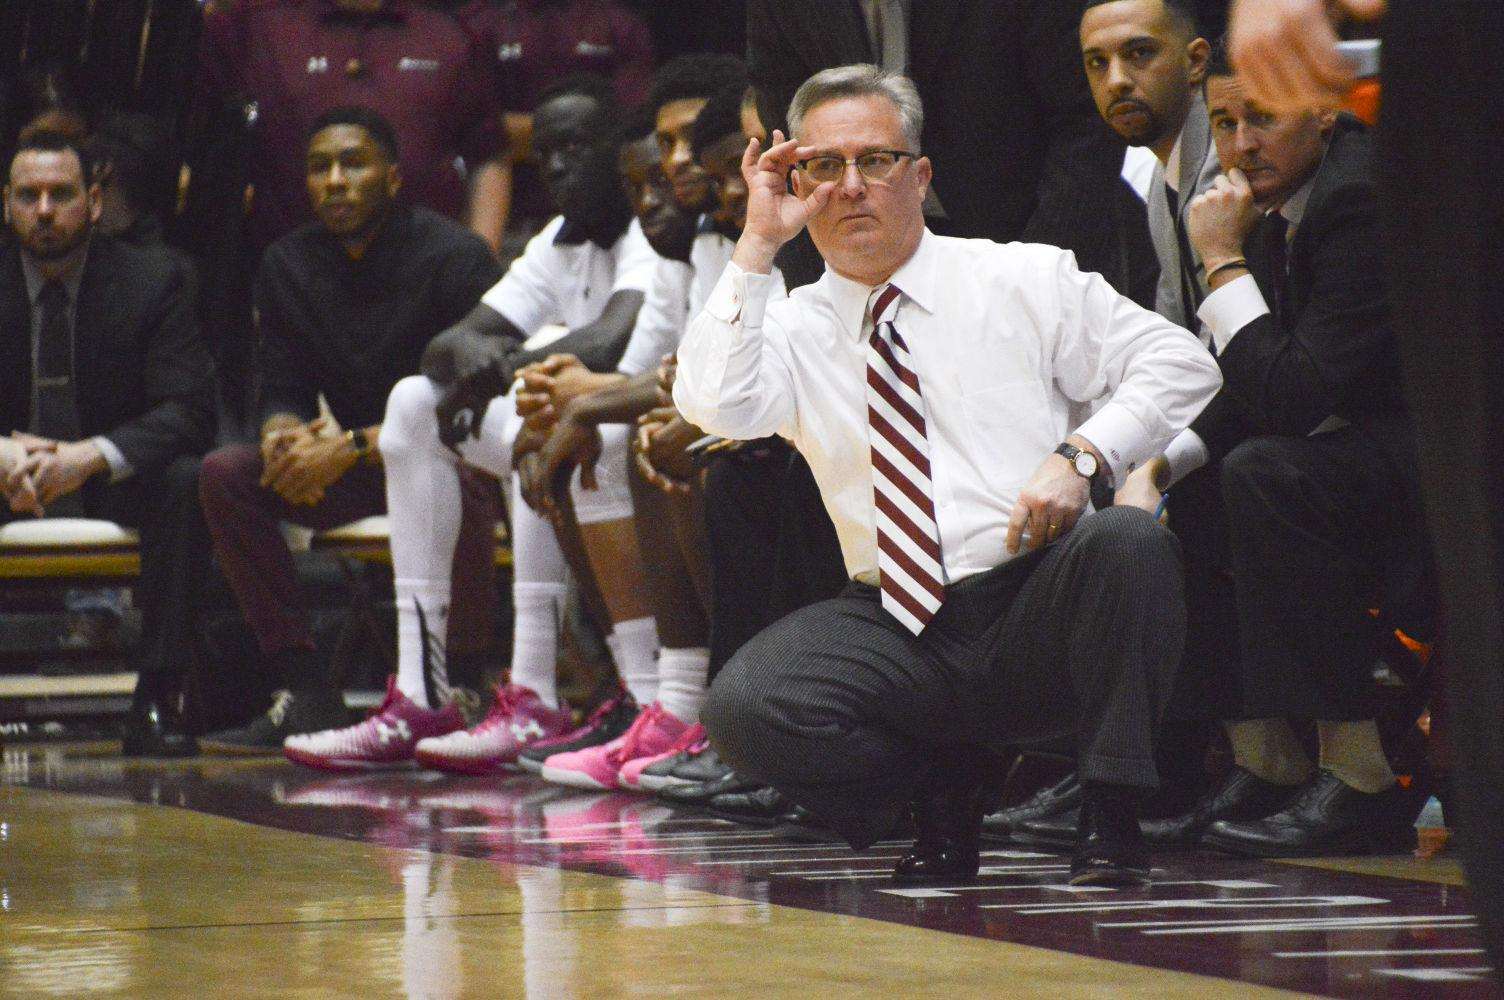 SIU men's basketball coach Barry Hinson squats during SIU's 83-58 loss to the Shockers on Jan. 9 at SIU Arena. (DailyEgyptian.com file photo)